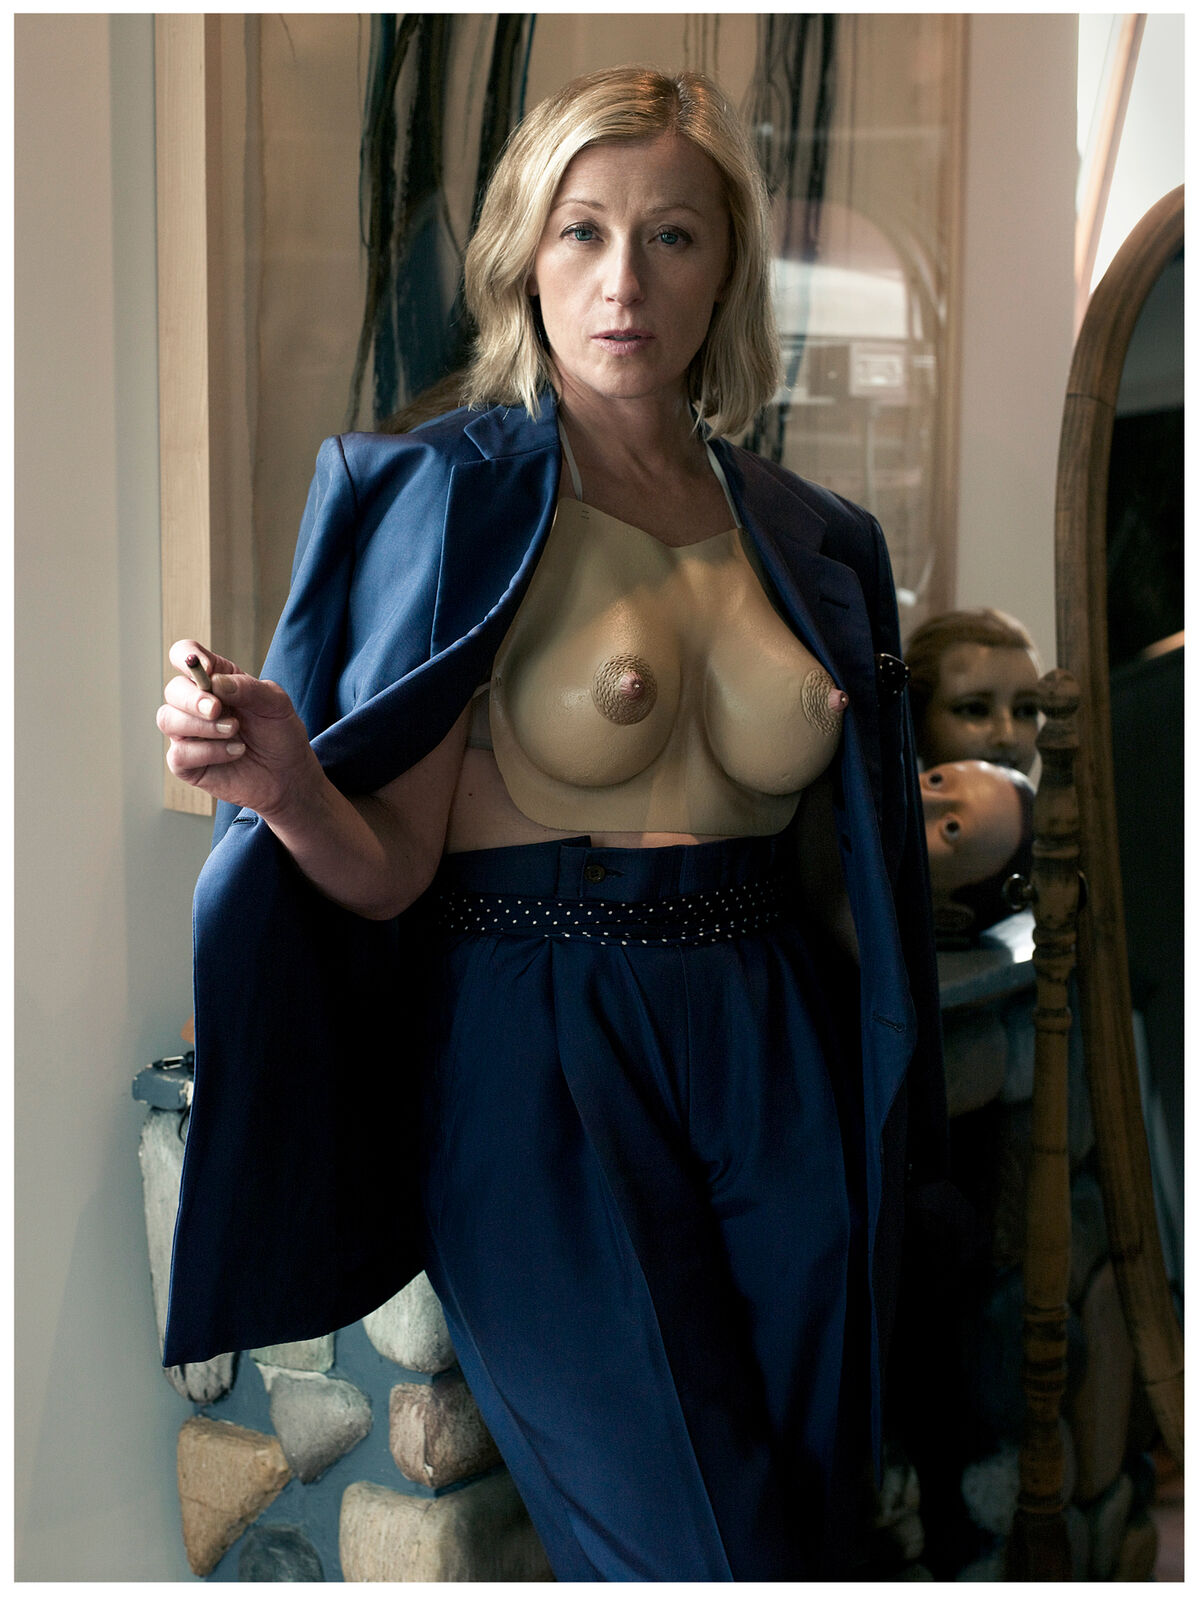 Mark Seliger, Cindy Sherman, New York, New York, 2009. Courtesy of the artist.